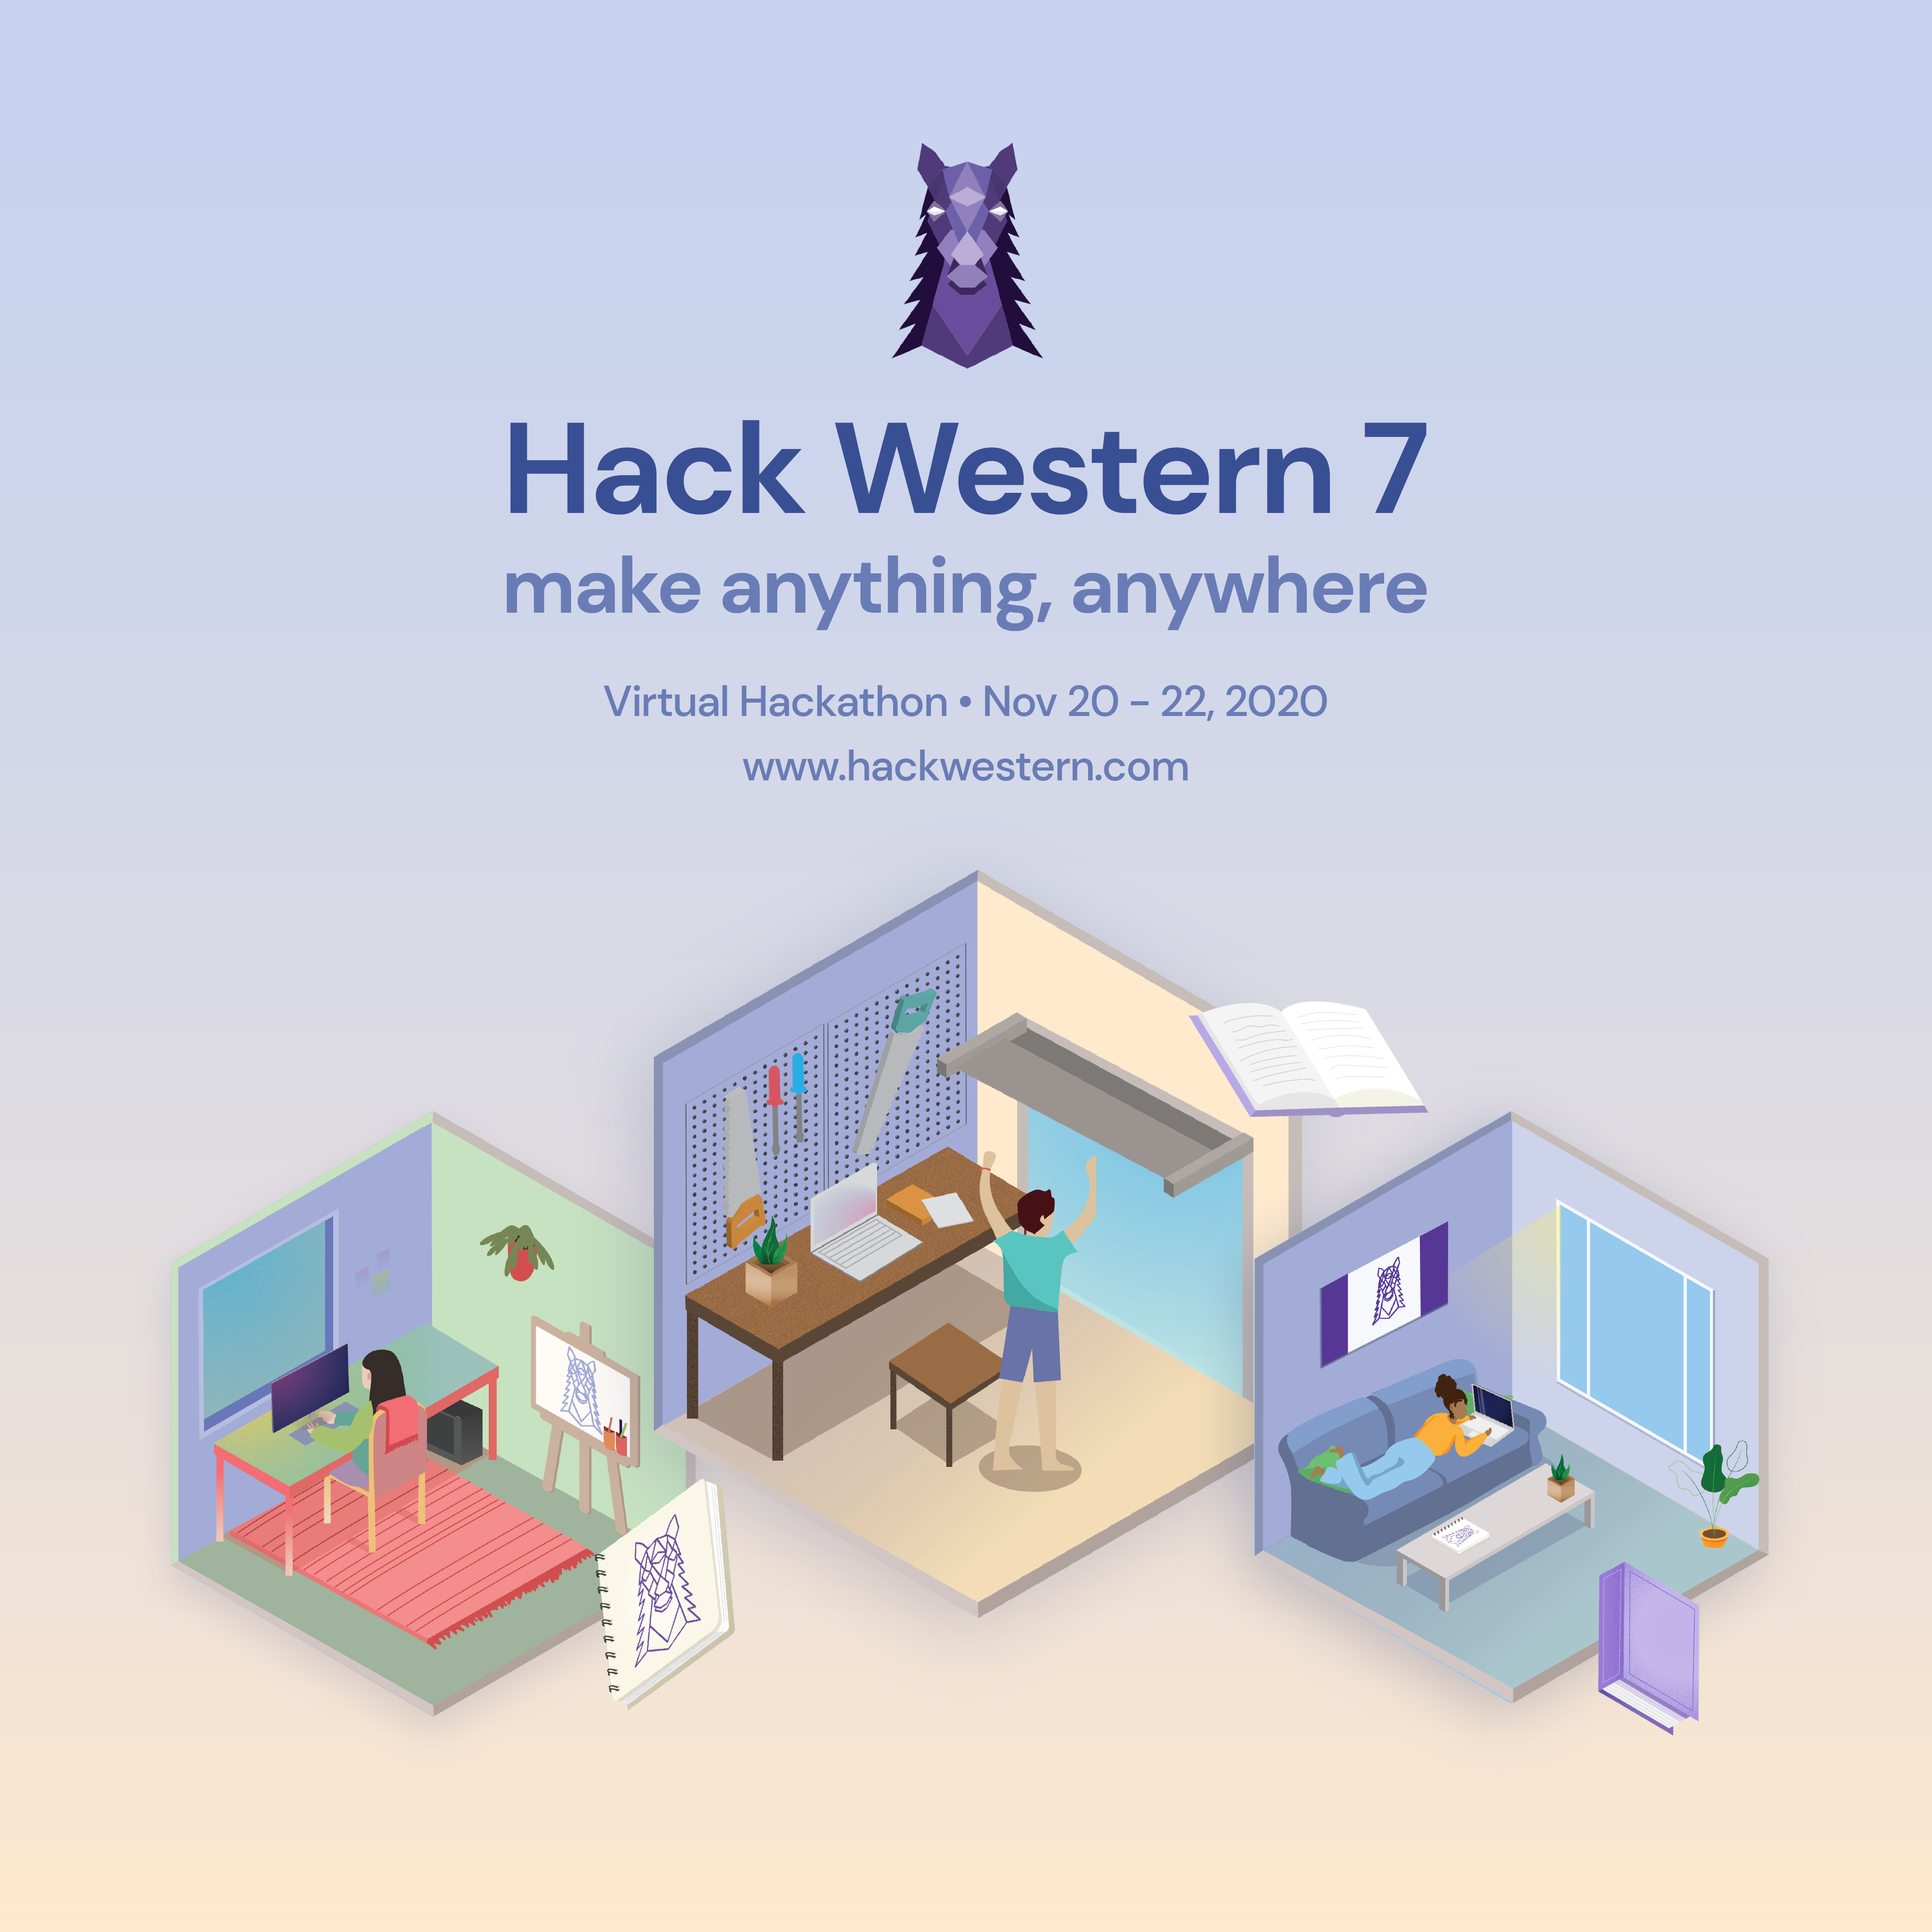 Graphic introducing Hack Western 7 applications